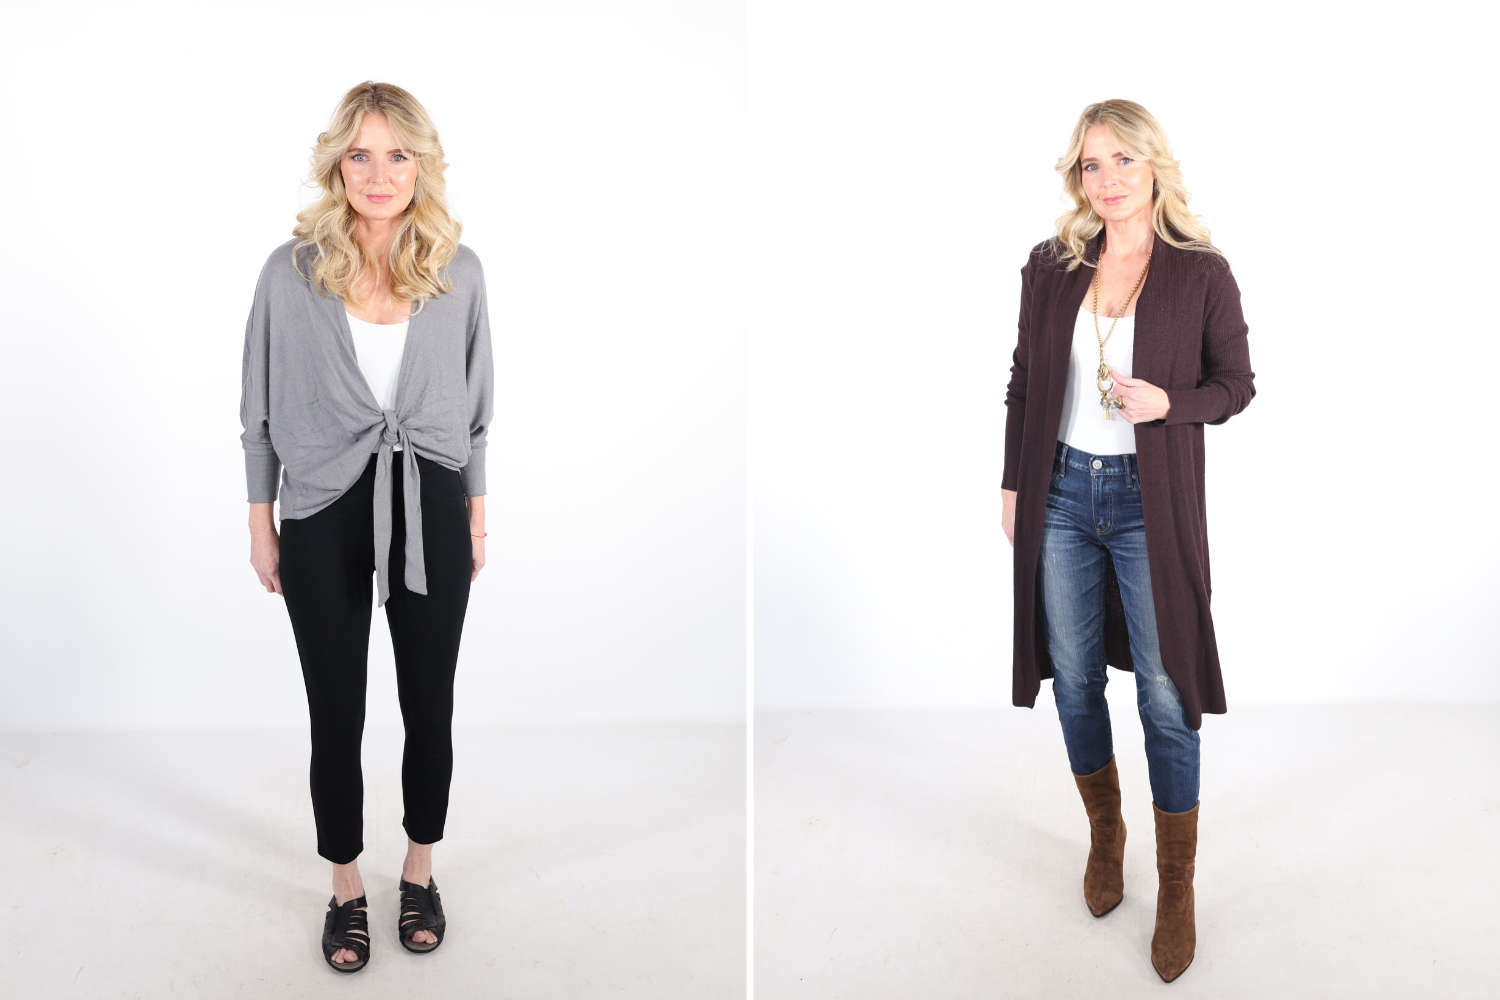 How To Look Younger, Erin Busbee of Busbee in a before and after wearing a gray tie front cardigan with black pants and old lady shoes on the left in the before picture. And a long rust colored cardigan, dark wash jeans, and brown boots on the right in the after picture